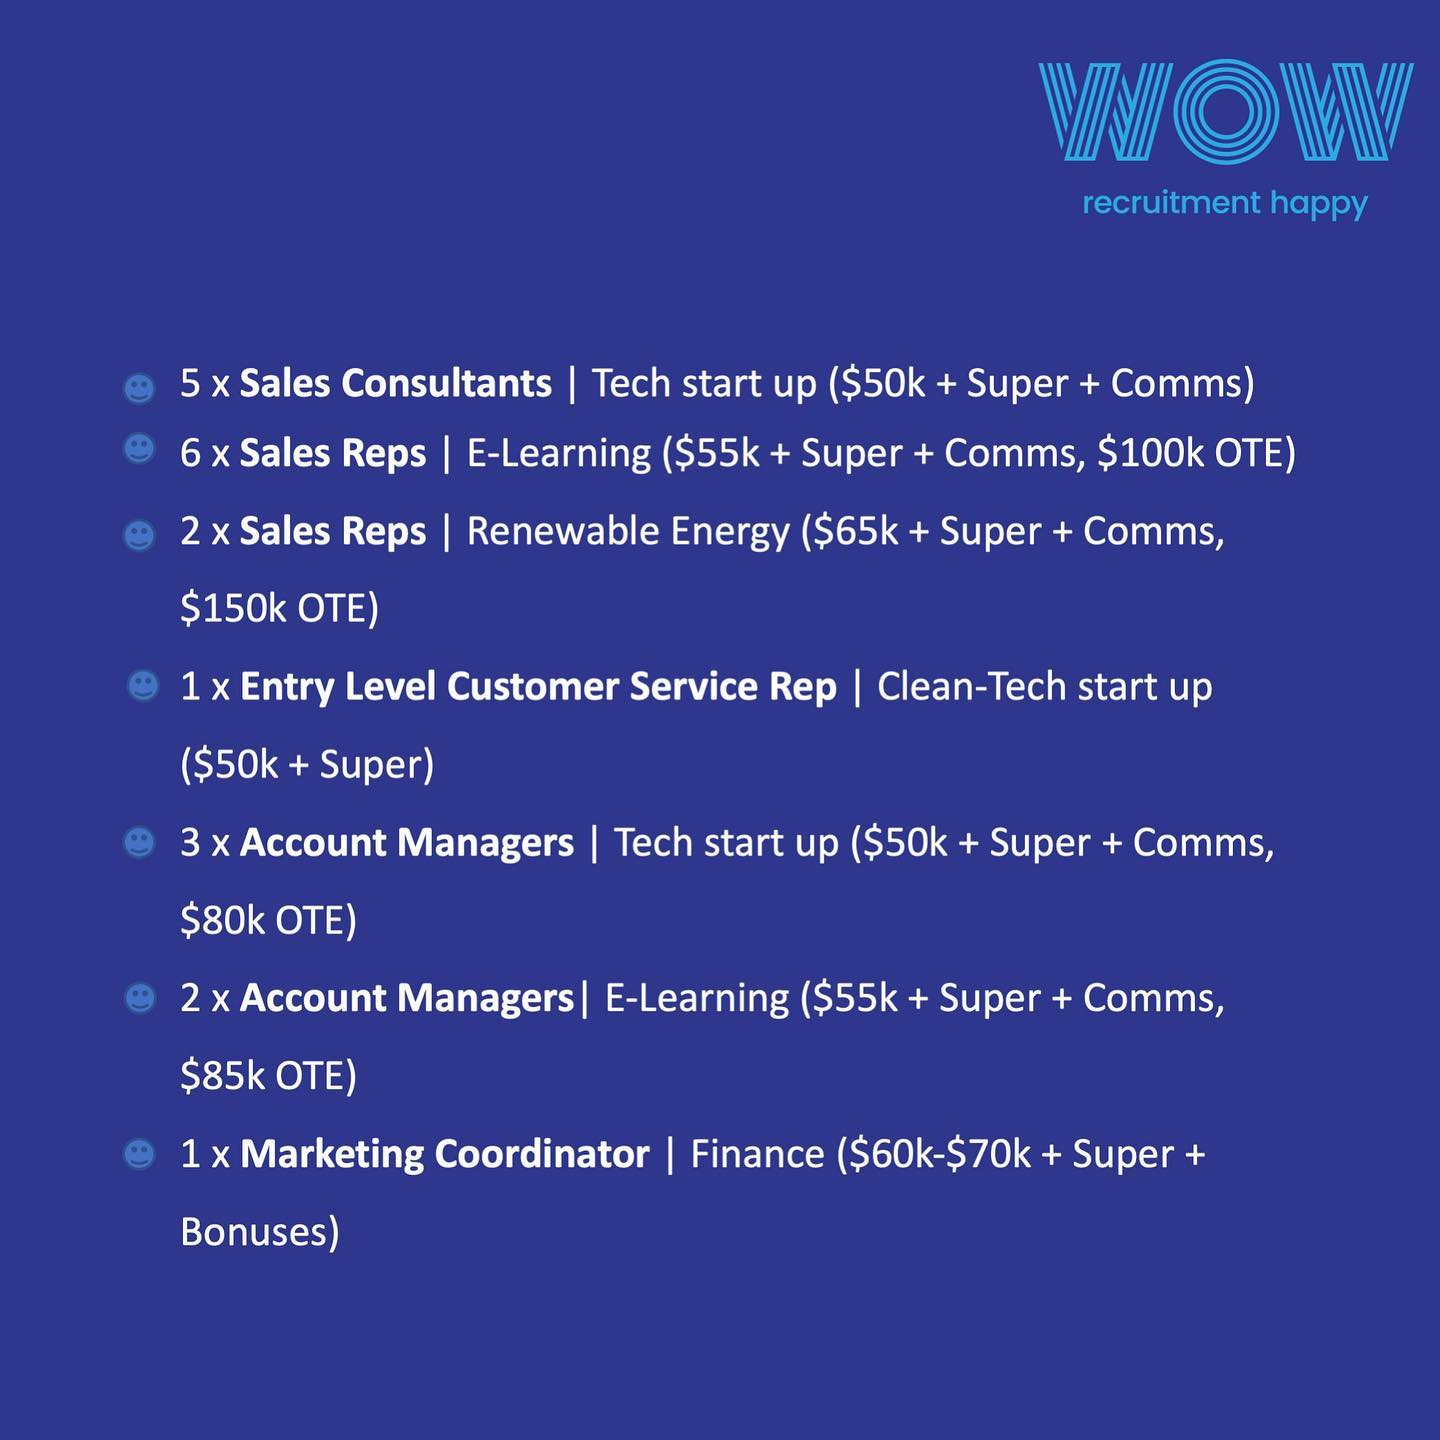 HOT JOBS FOR THE NEW YEAR! . Here are just a few of the Junior Sales, Customer Centric and Marketing roles WOW Recruitment are currently working on in Sydney. . . Please reach out to us if you're open to hearing about new opportunities in the sales, customer service or marketing space or know someone who may be - 02 8320 0683  . . #marketing #customerservice #sales #jobad #dowhatyoulove #career #workhappy #recruitmenthappy #hiring